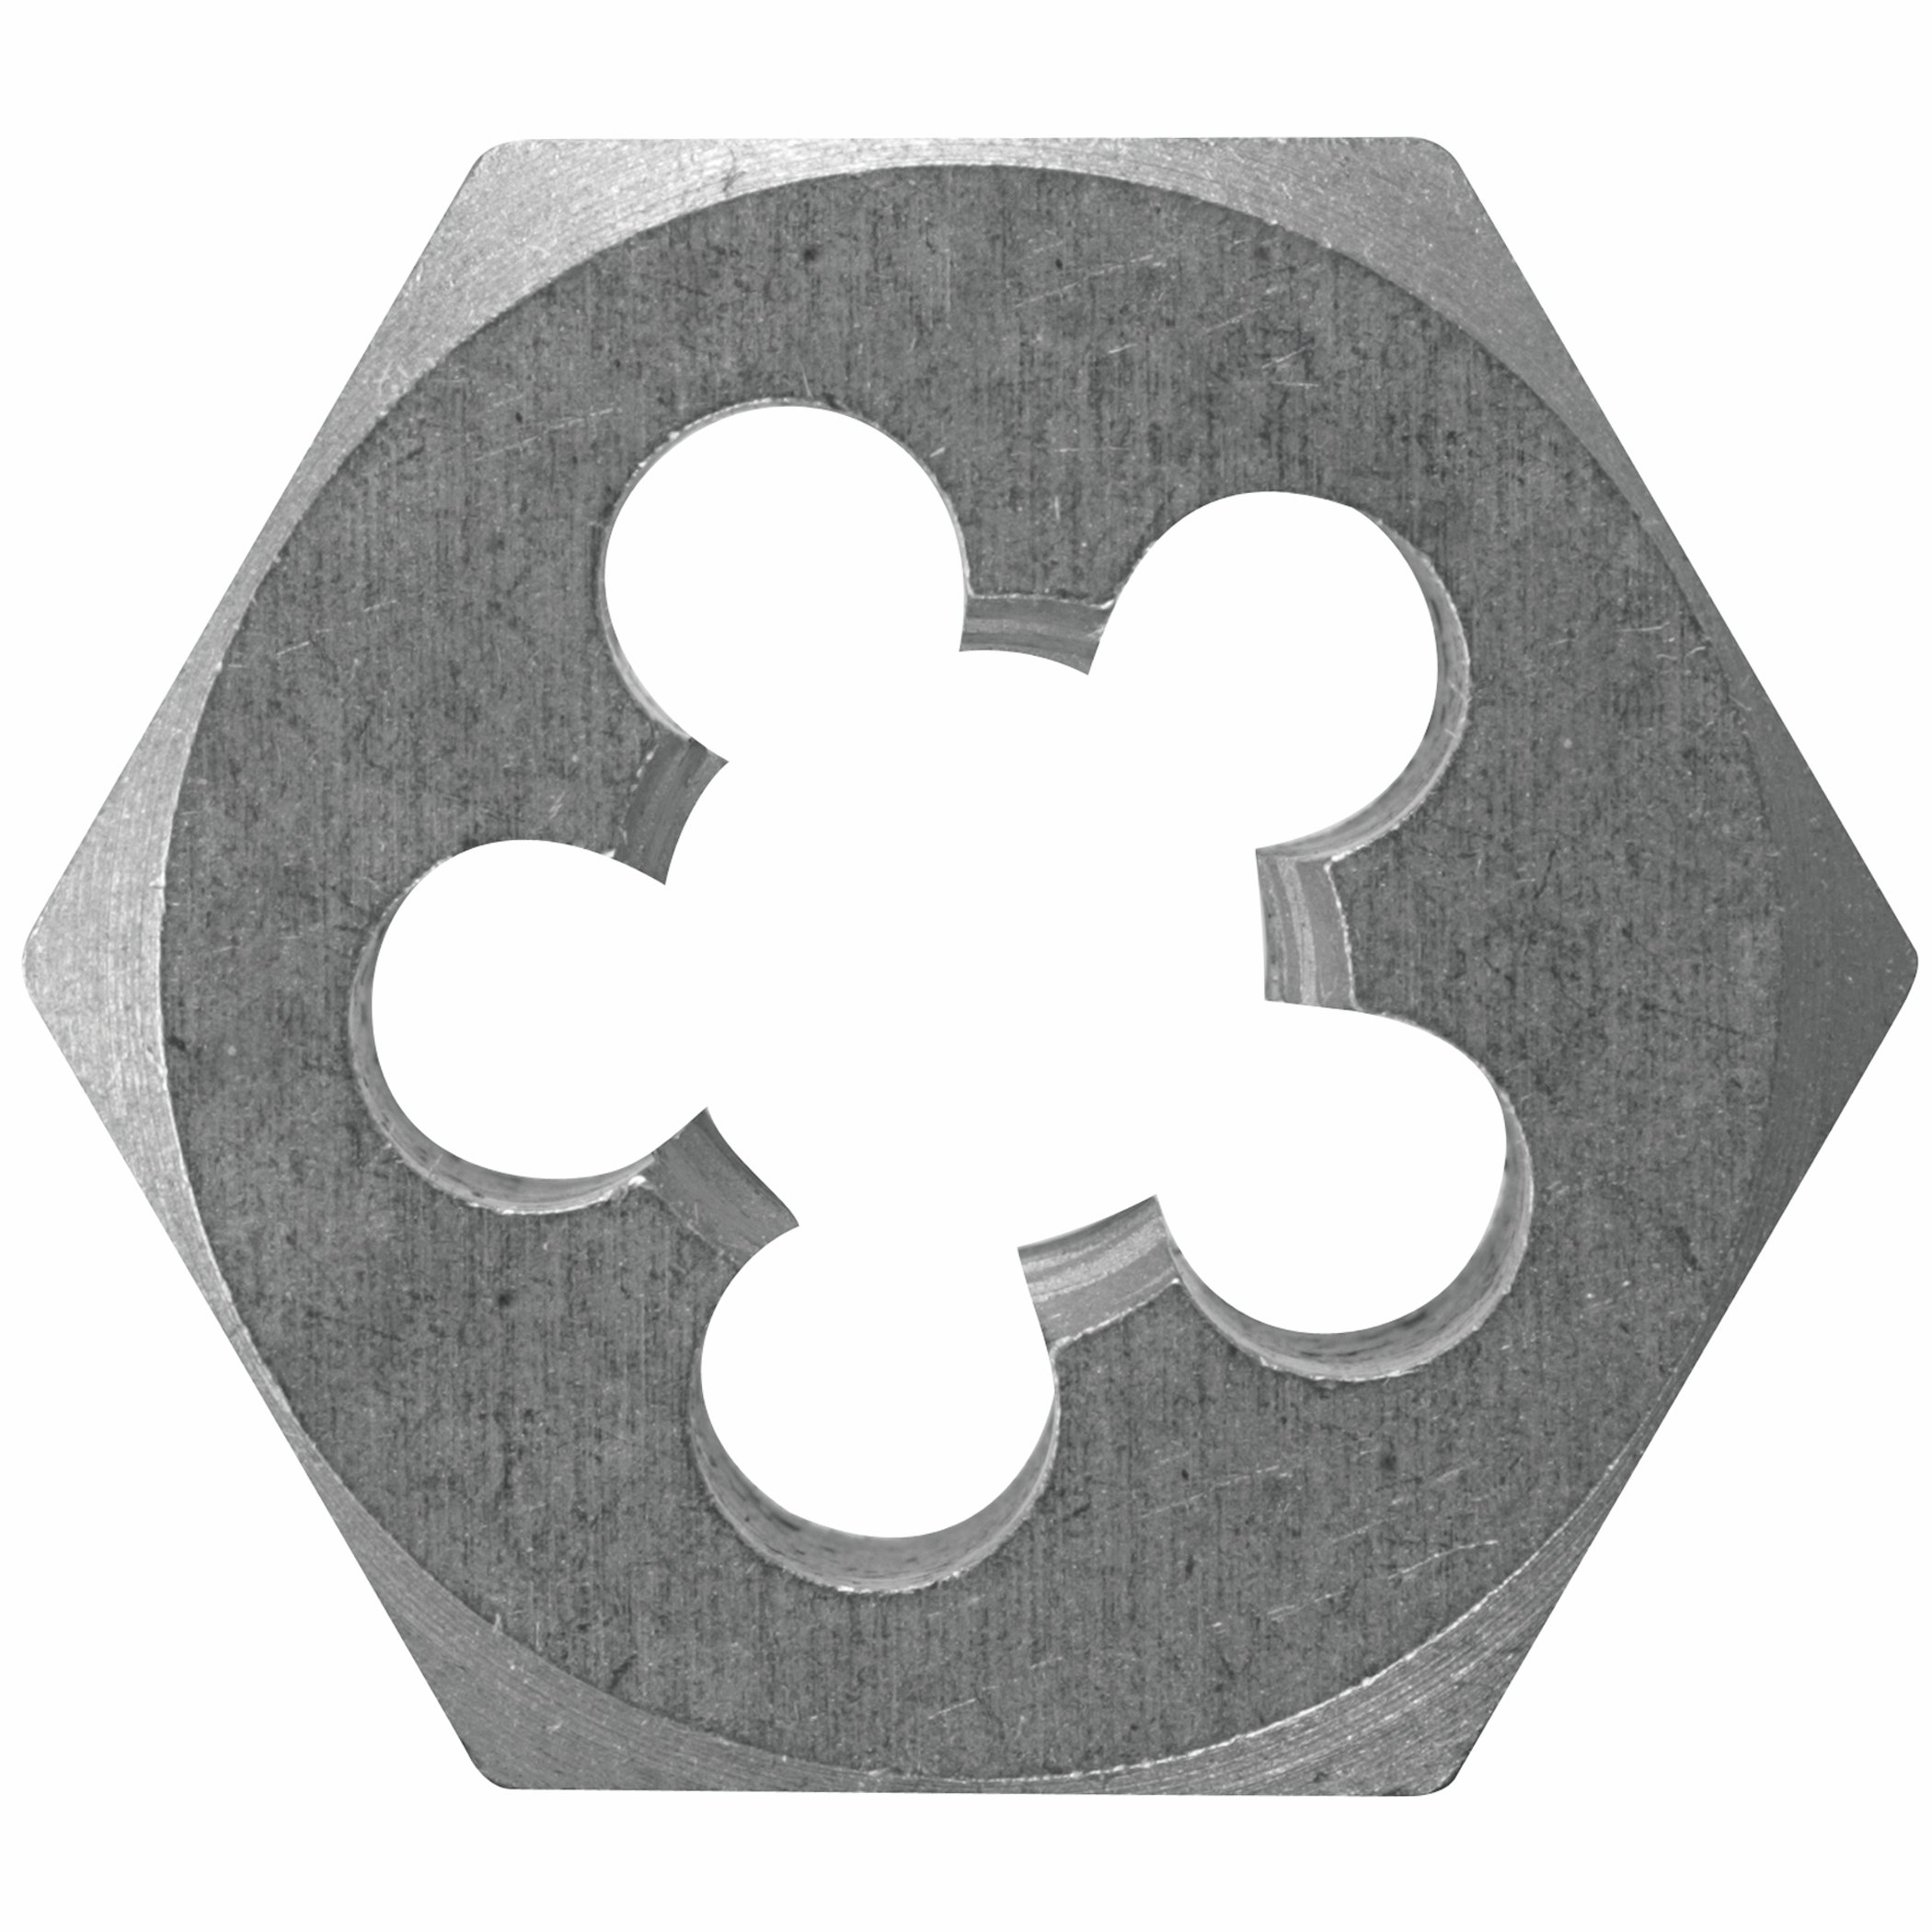 Vermont American 20731 5/8-Inch to 18 National Fine High Carbon Steel Fractional Heby Die by Vermont American